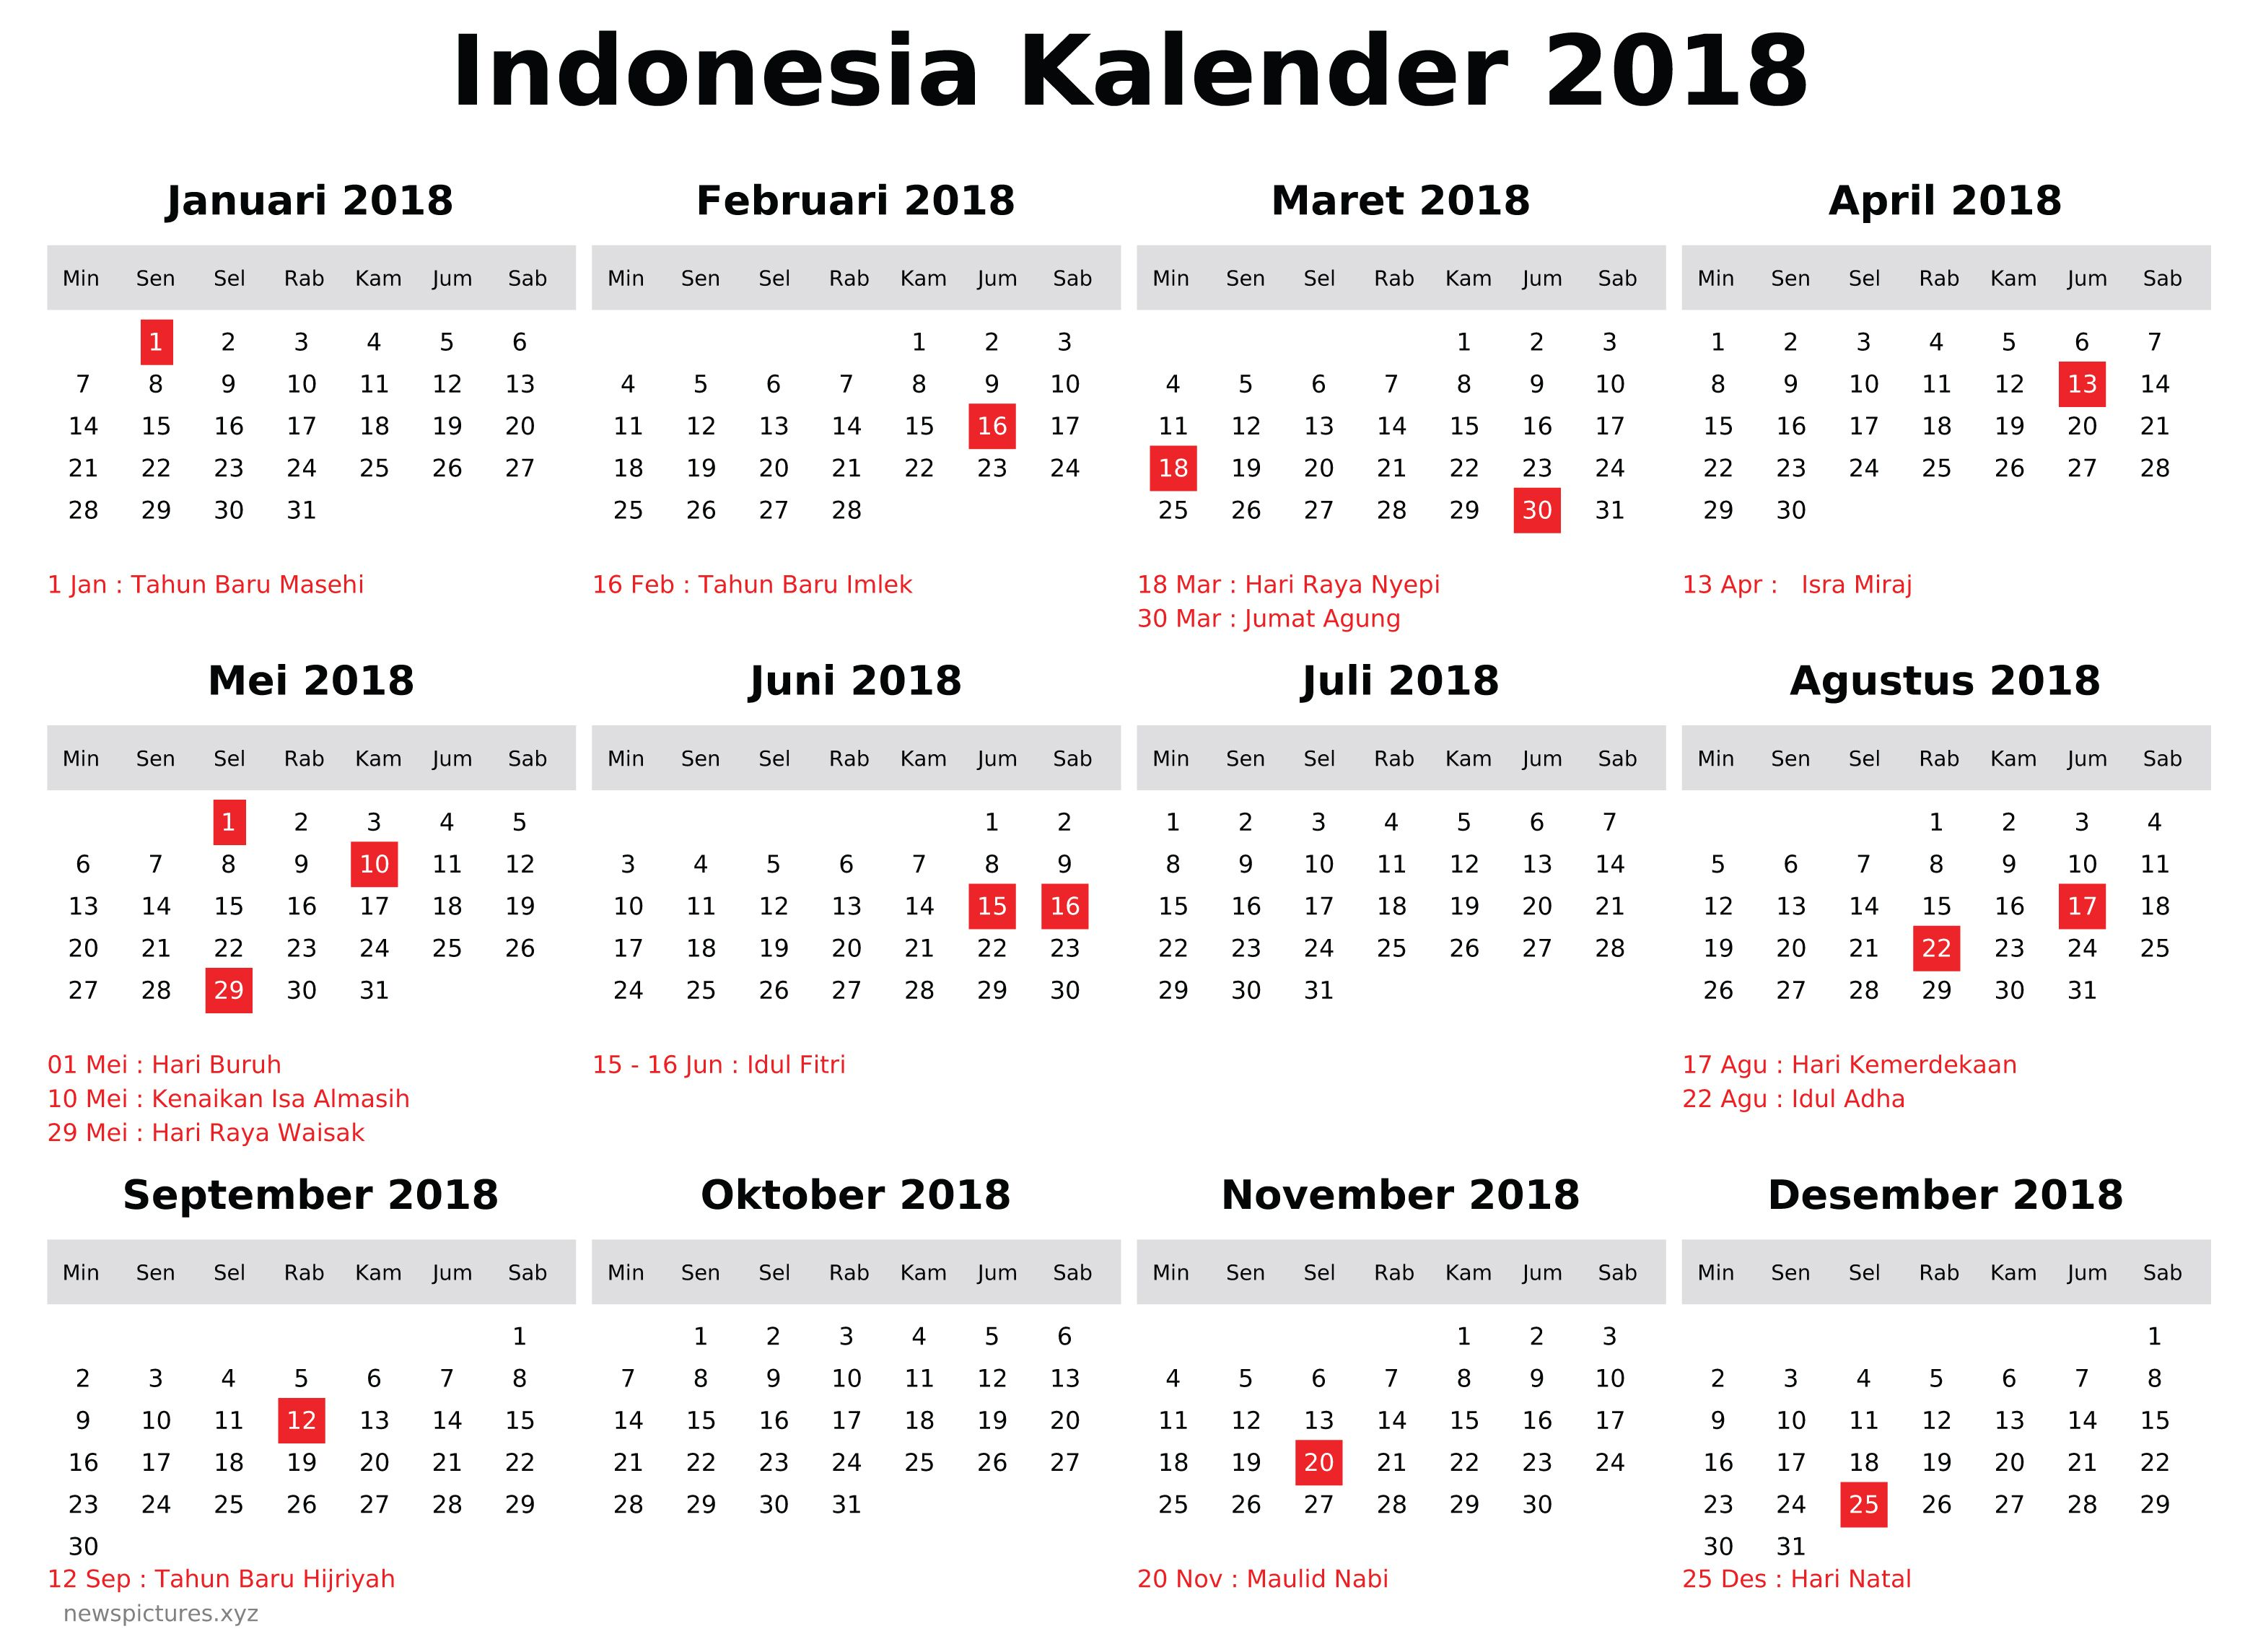 kalender indonesia 2018 newspictures